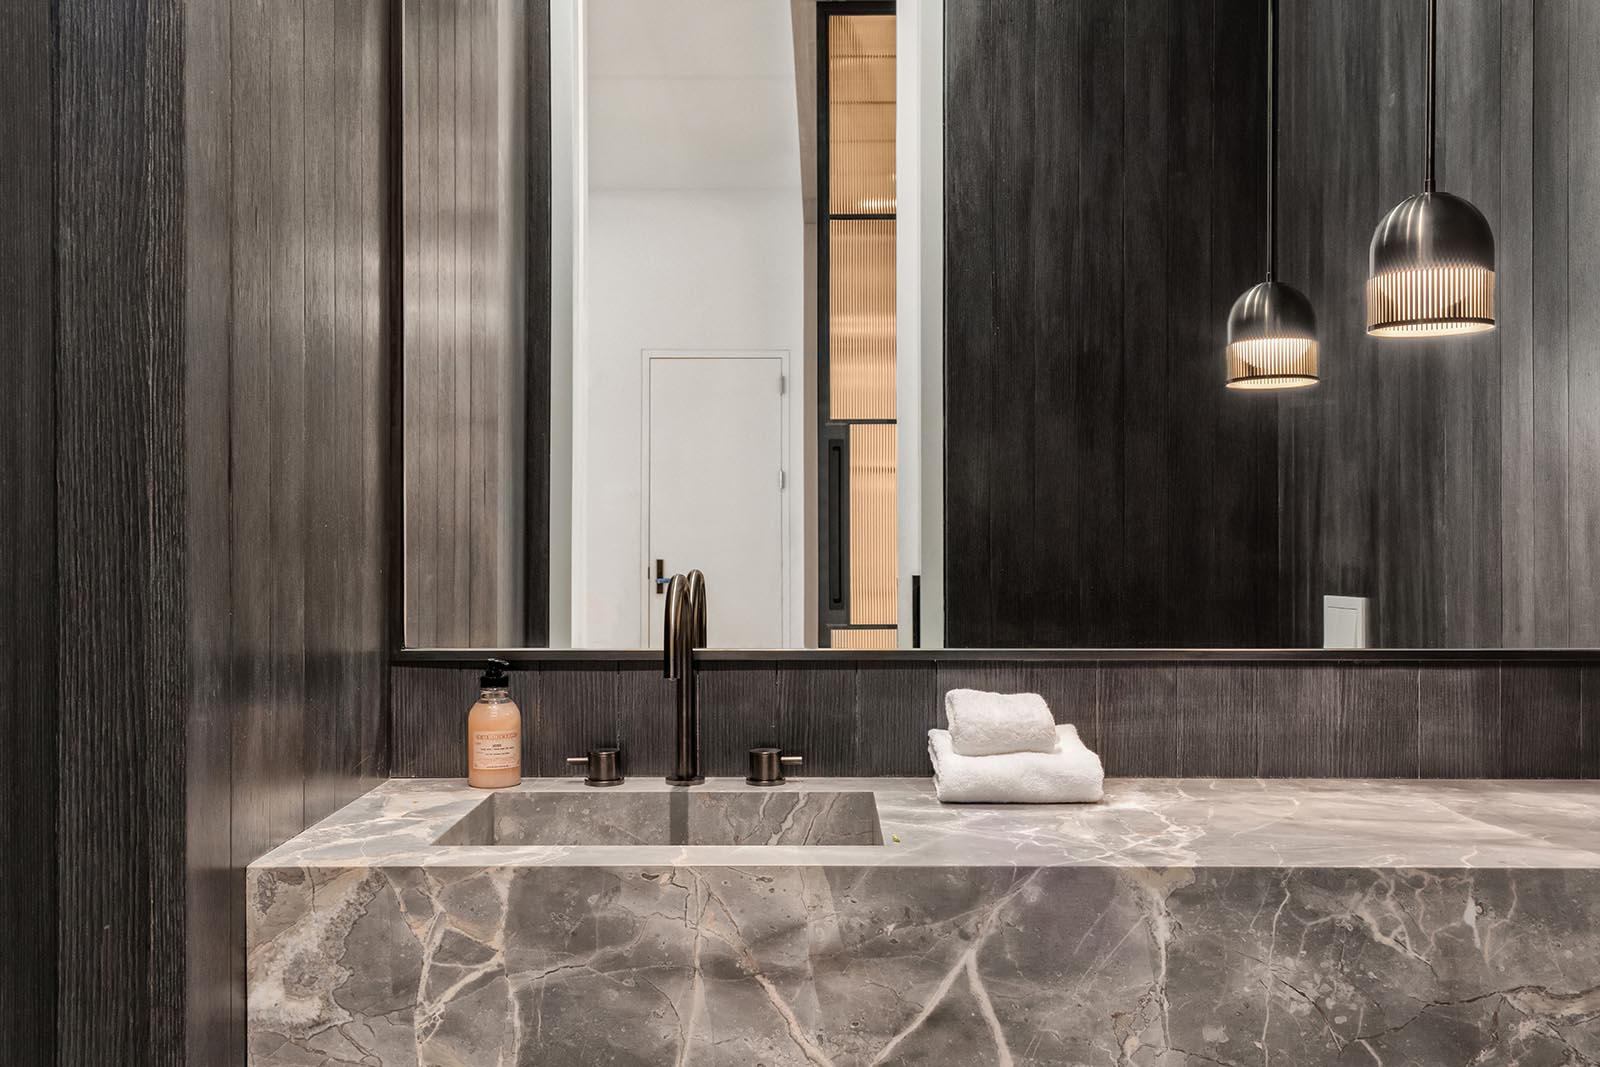 In this modern bathroom, dark wood walls have been used to create a dramatic appearance.